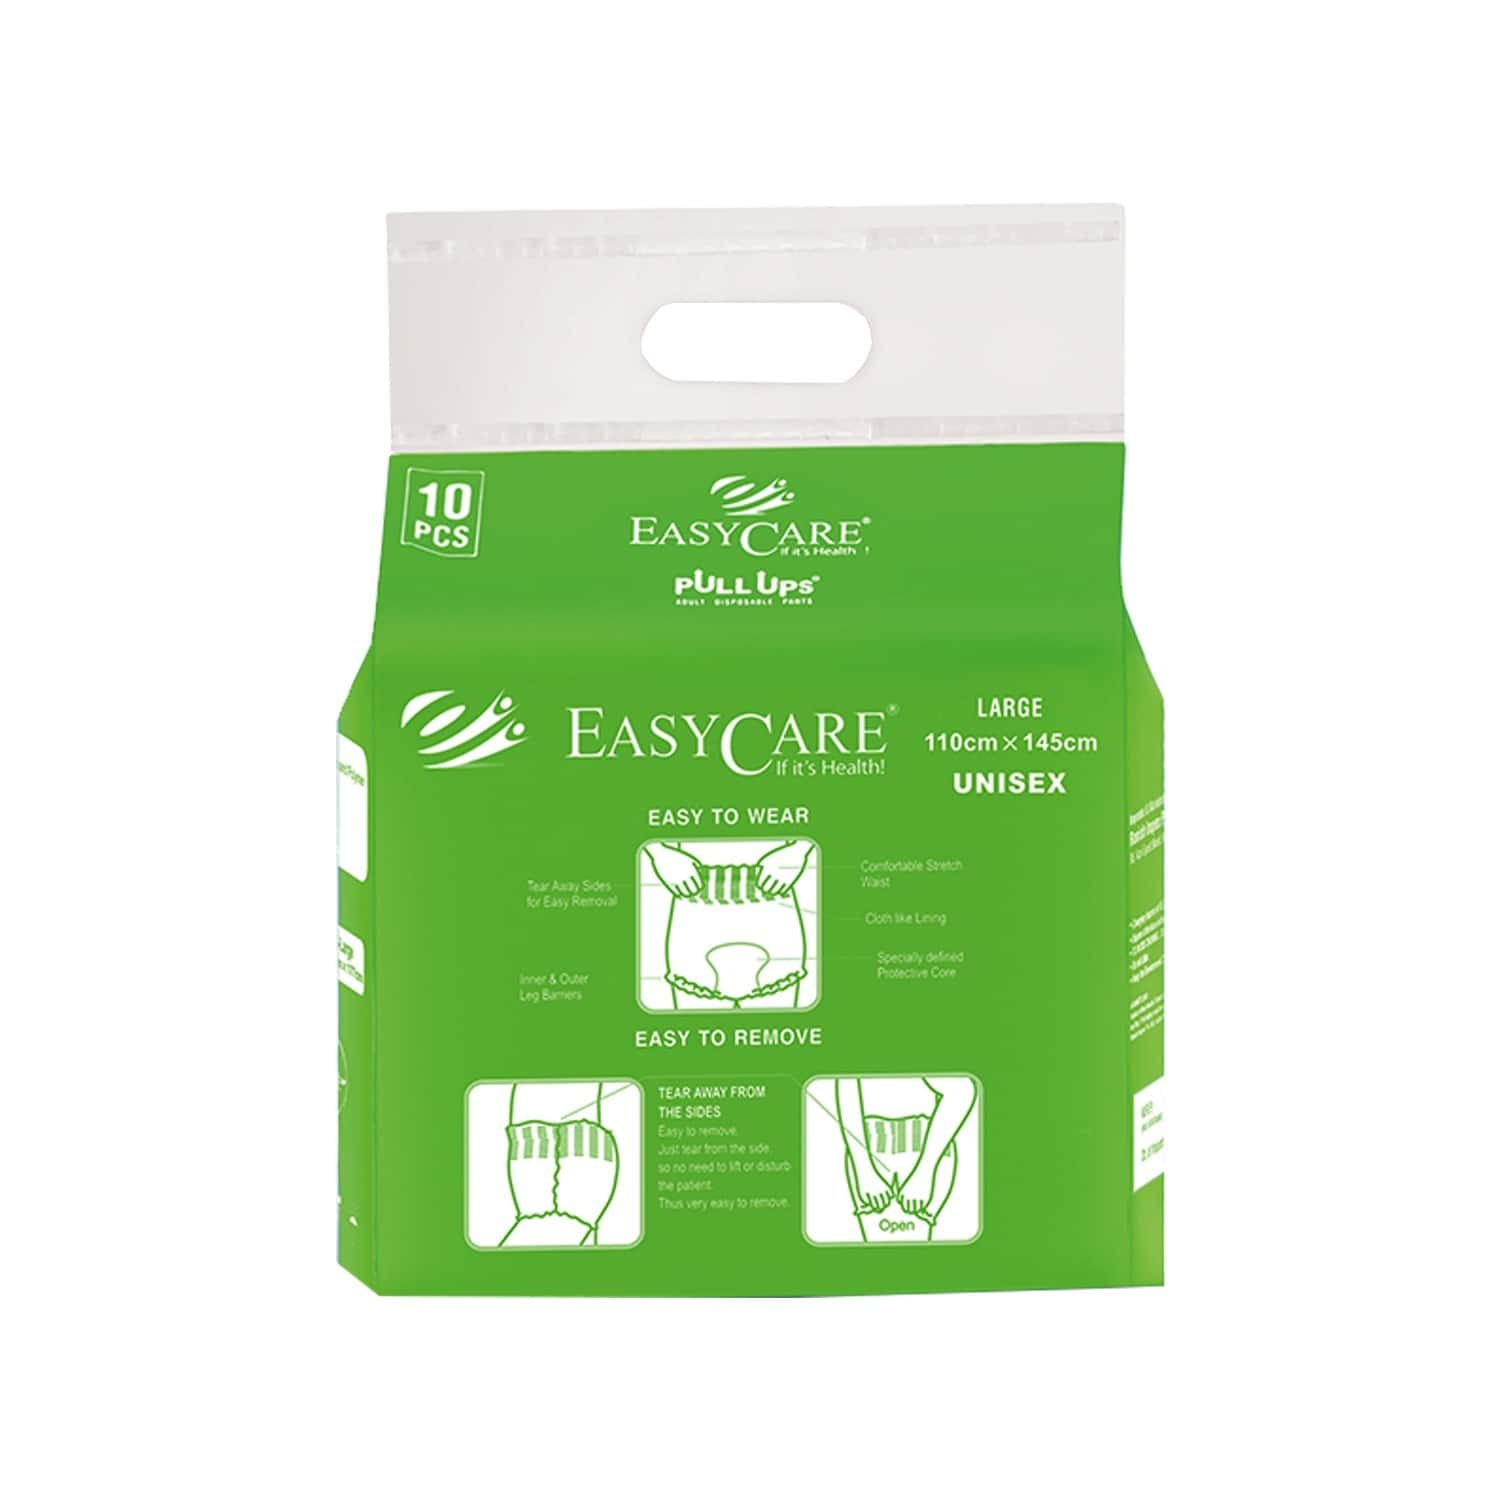 Easycare Disposable Adult Diaper Pants (pull Up) Pack Of 10 Large (110 X 145 Cm) Fit & Flex Makes Life Easier